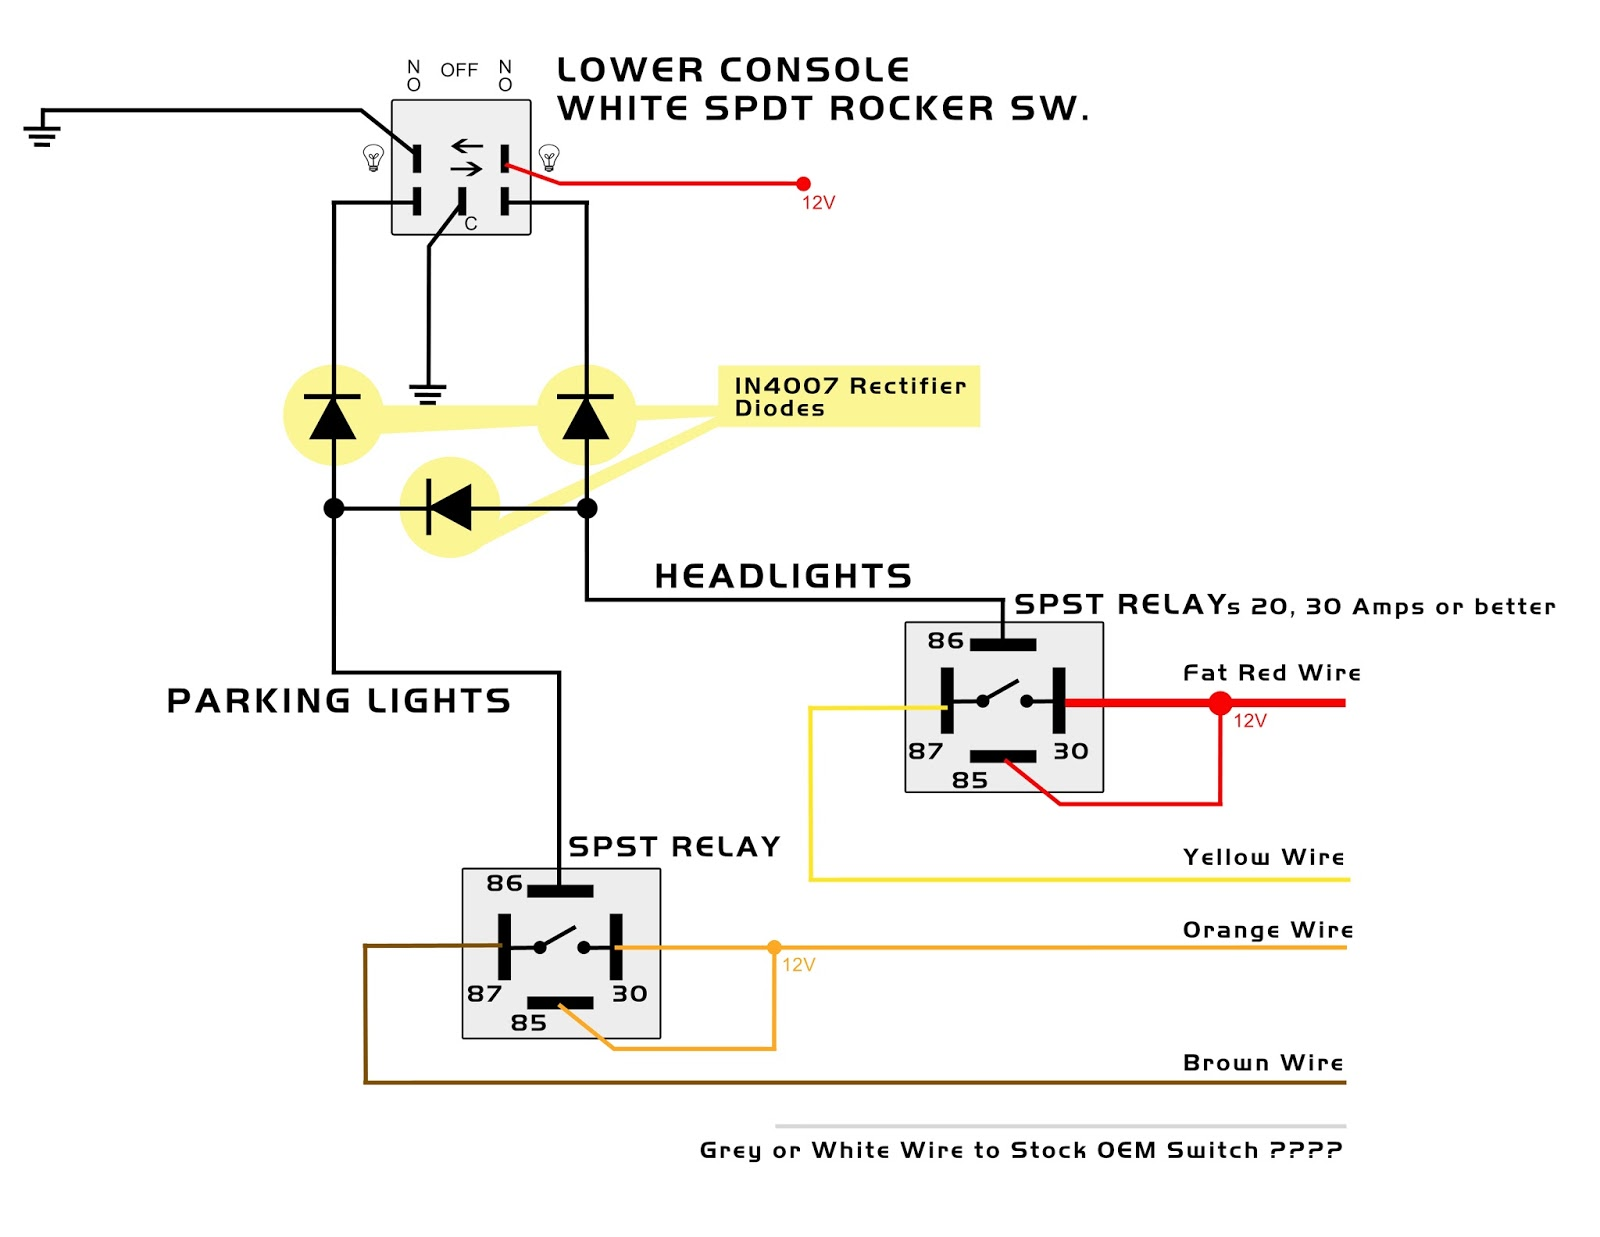 LowerConsoleWiringDiagram03__HeadlightsParkingLightsSW my knight rider 2000 project parking and headlights lower console auxiliary switch wiring diagram at alyssarenee.co